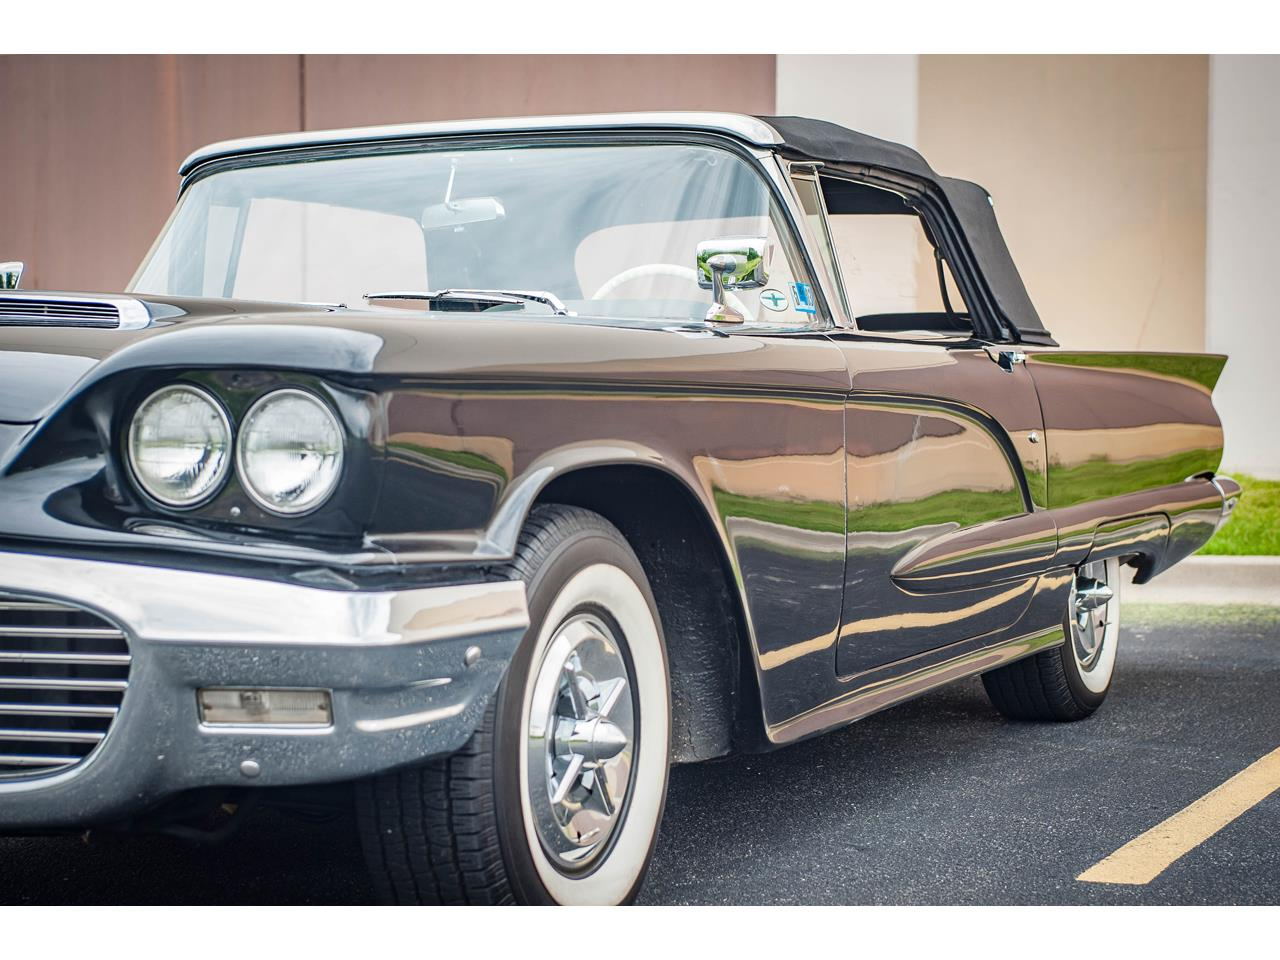 Large Picture of Classic 1960 Ford Thunderbird - $40,500.00 Offered by Gateway Classic Cars - St. Louis - QB9W